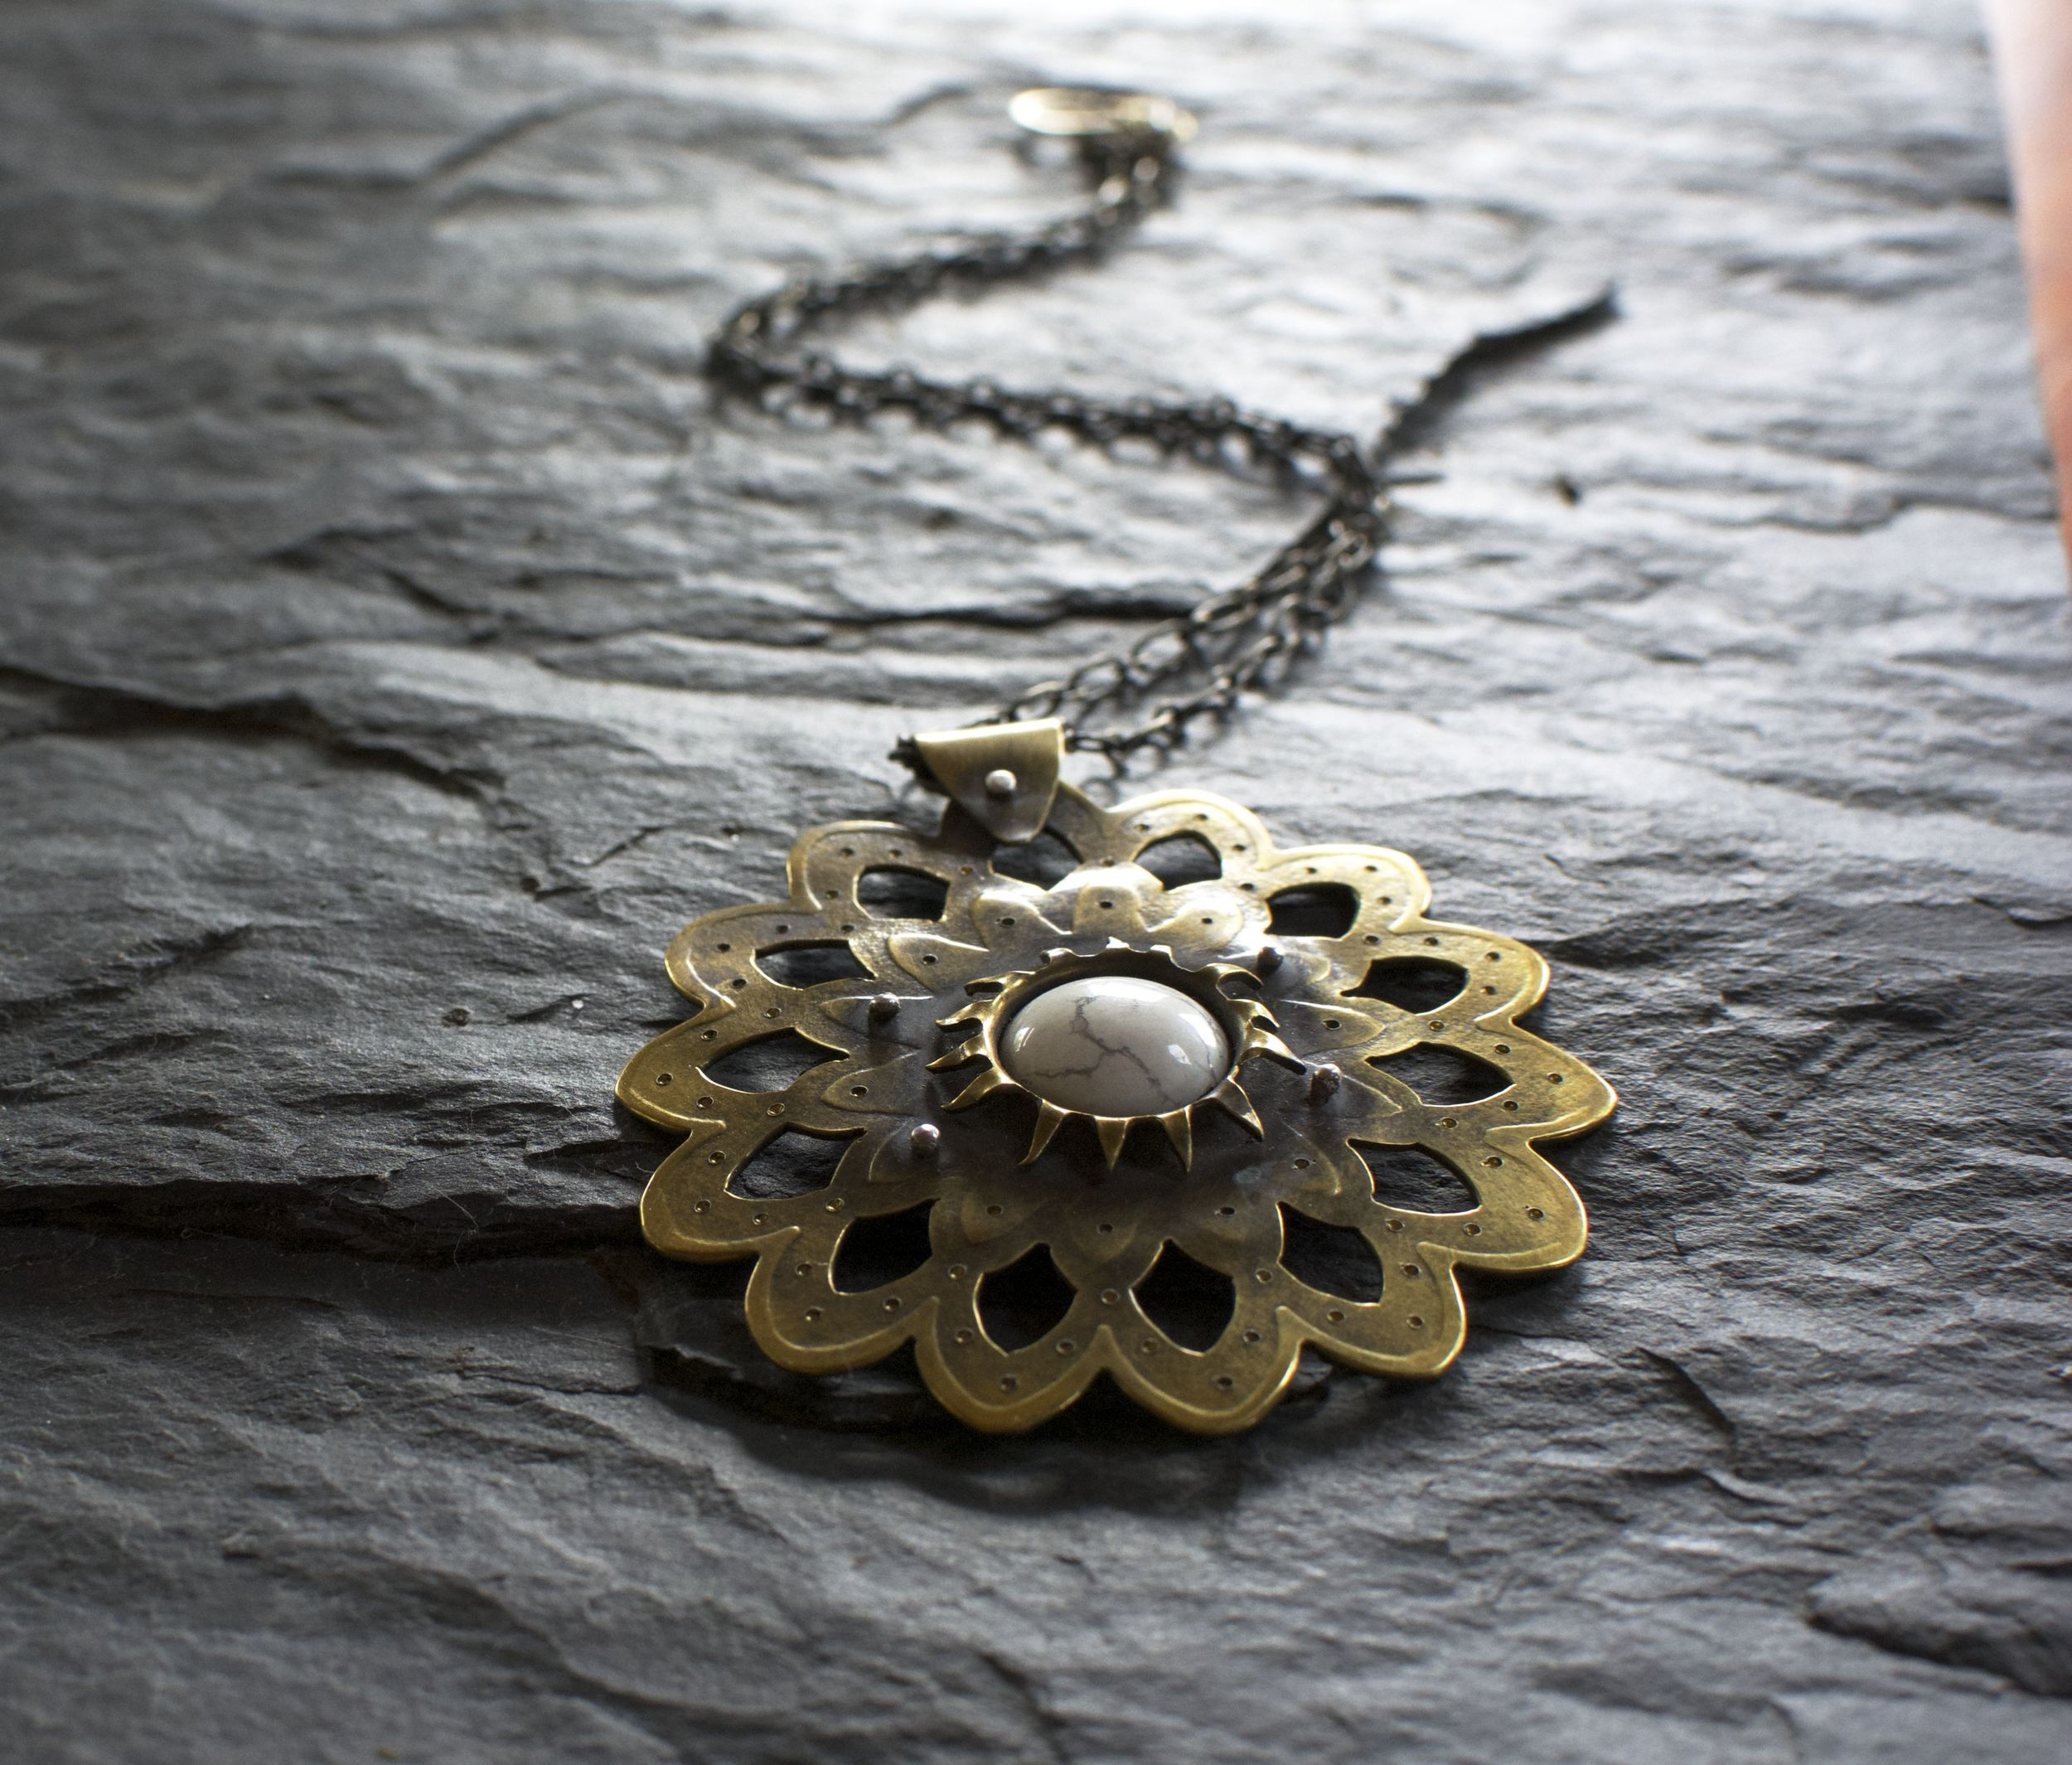 Lace lotus pendant with howlite